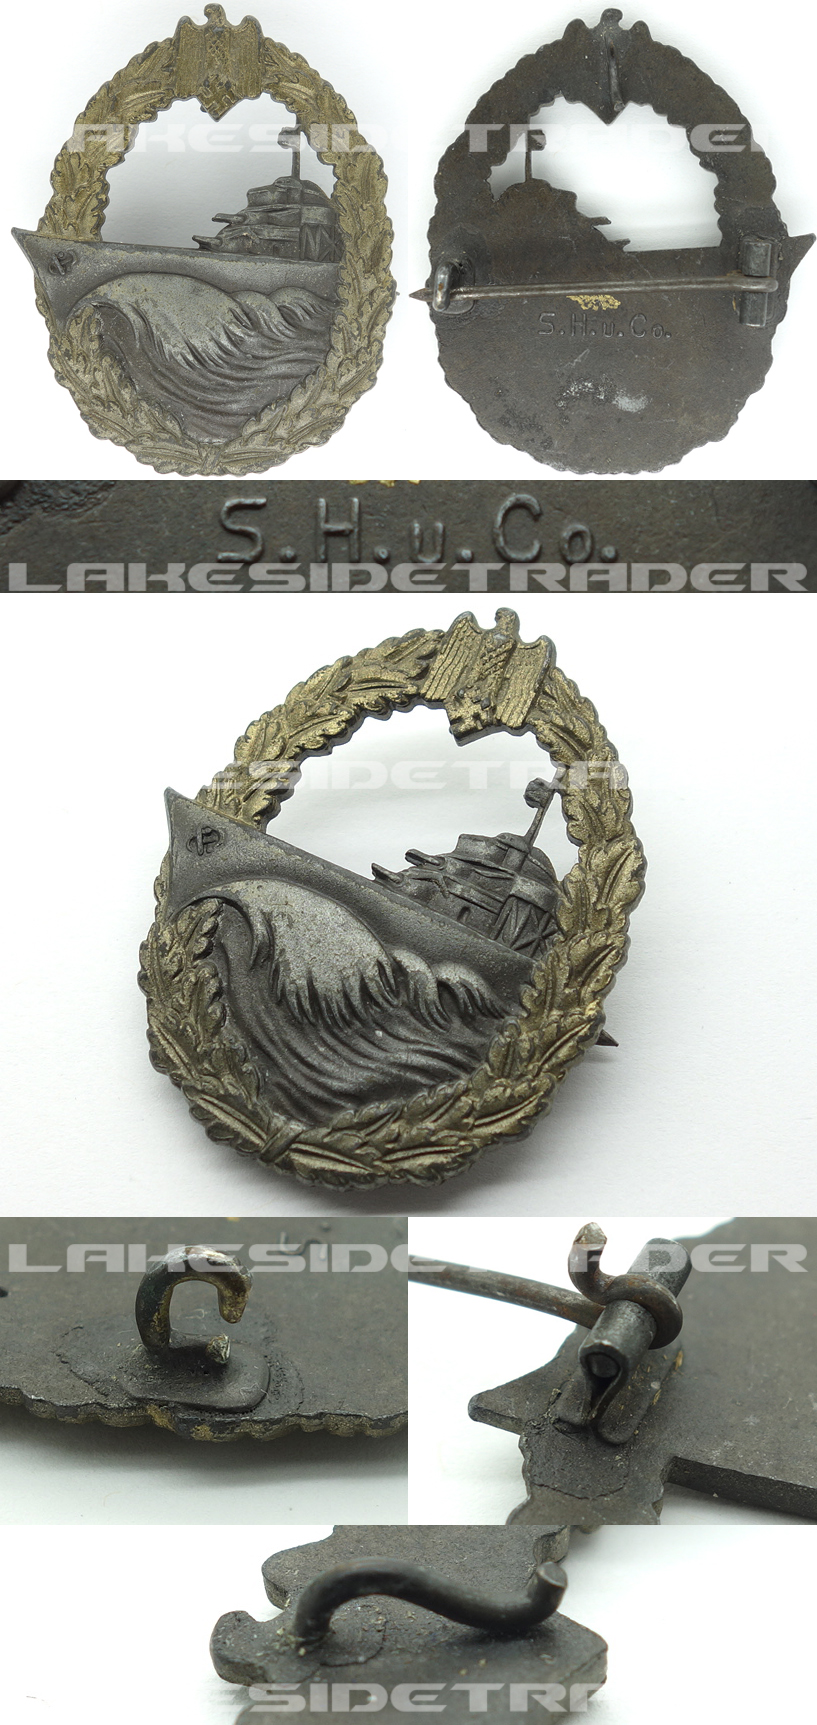 Navy Destroyer Badge By S H U Co Lakesidetrader